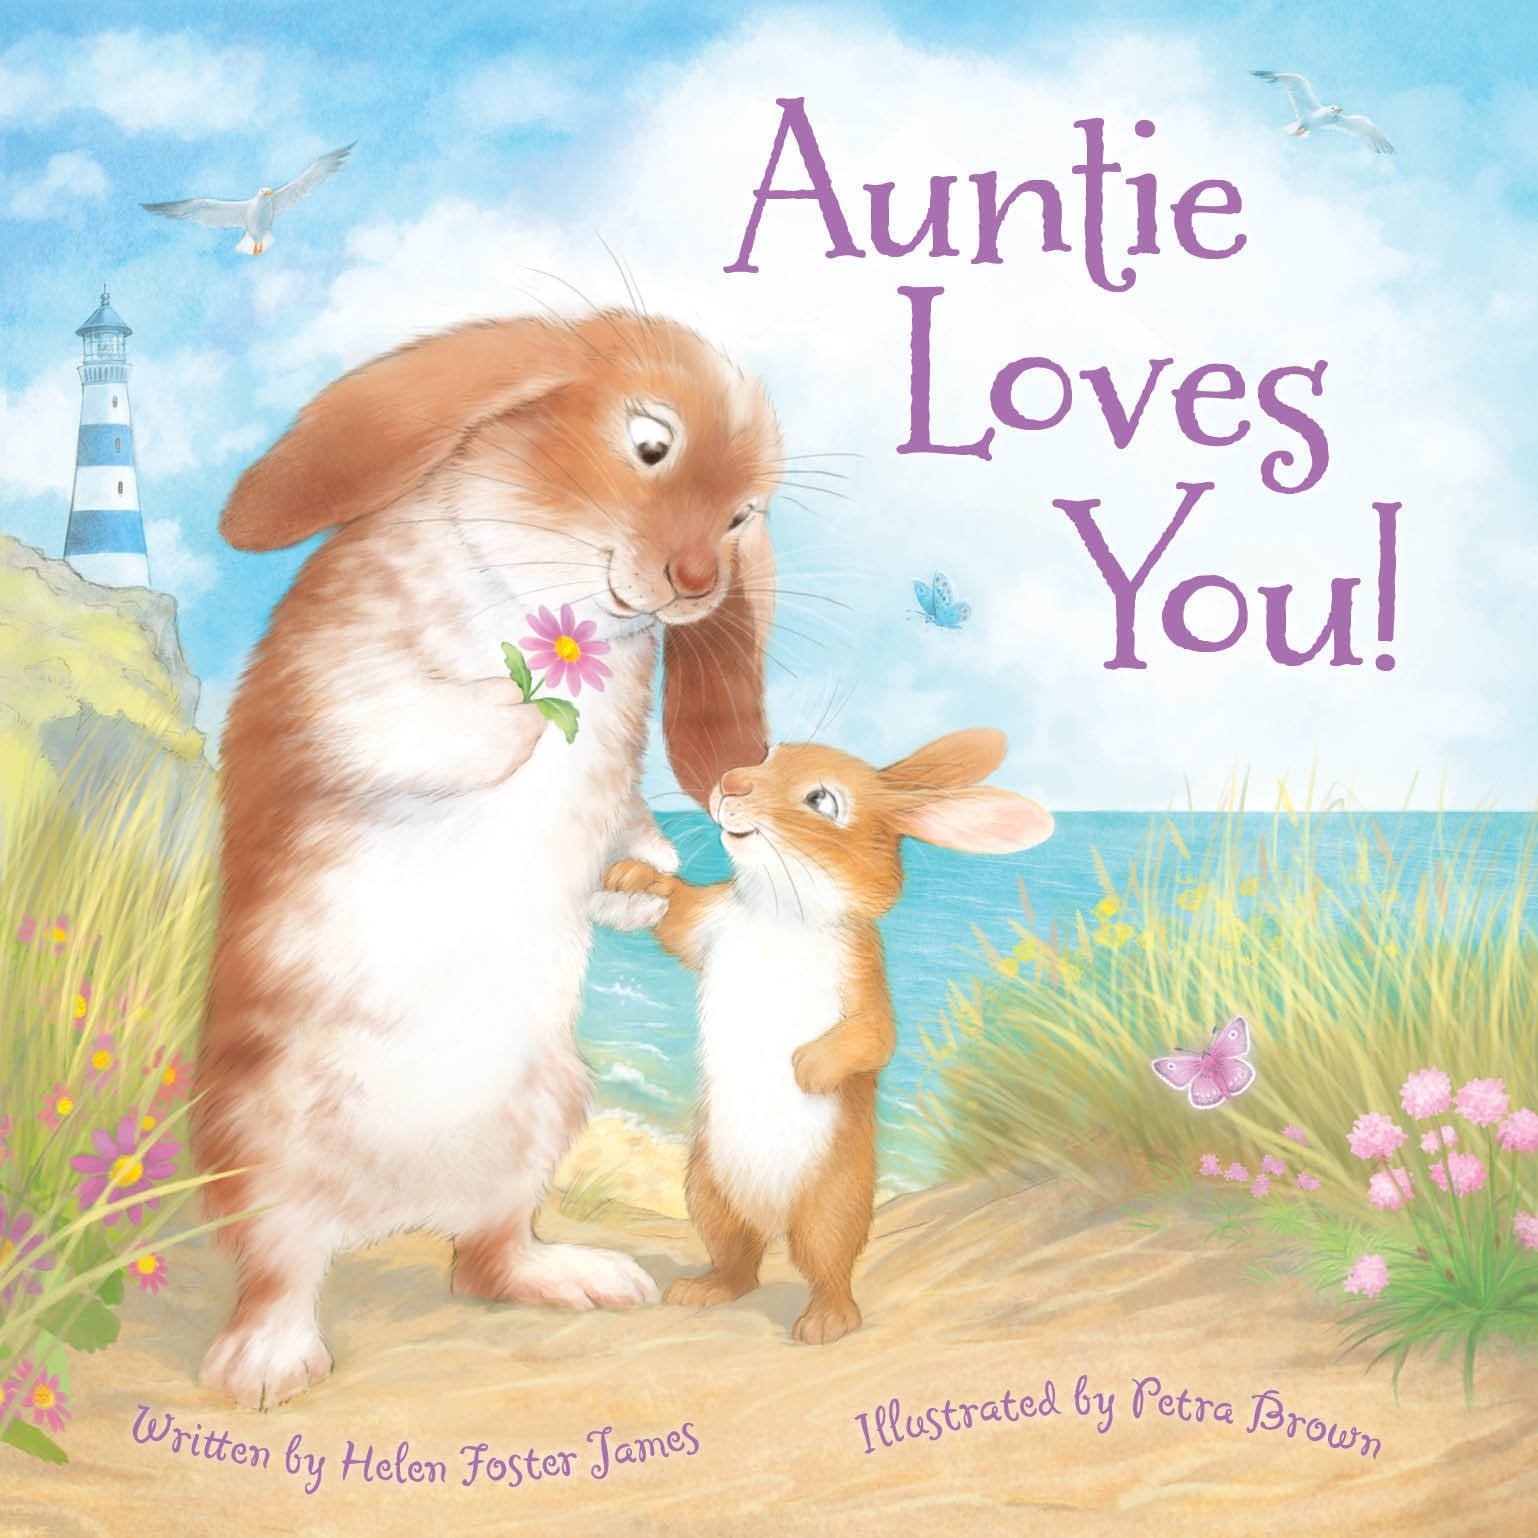 Auntie Loves Helen Foster James product image